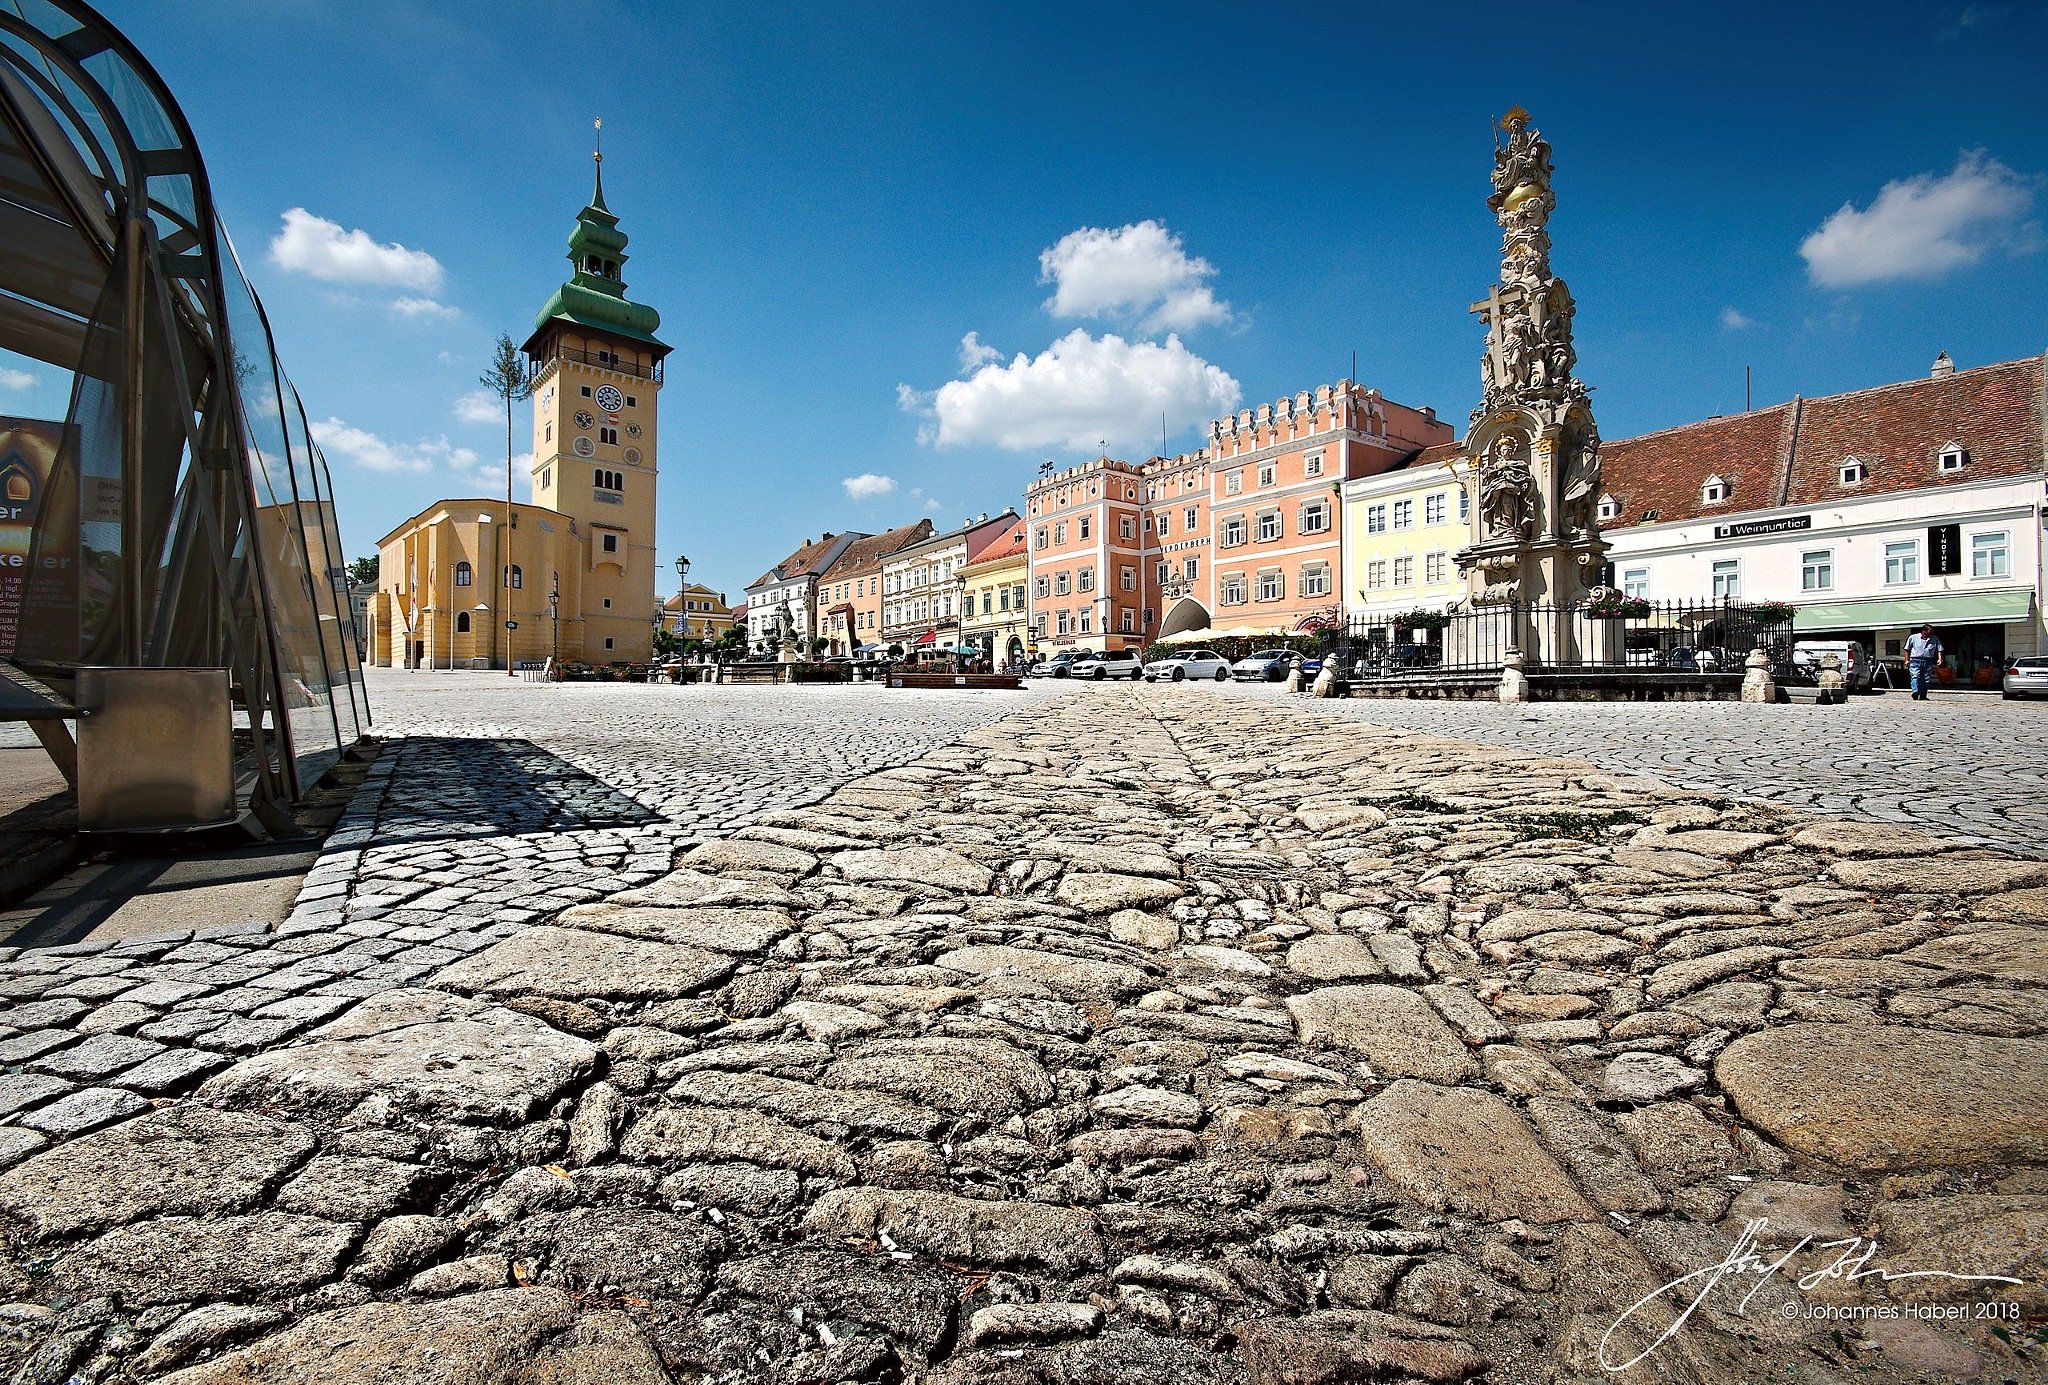 main square Retz with Town Tower & Trinity Column by Johannes Haberl